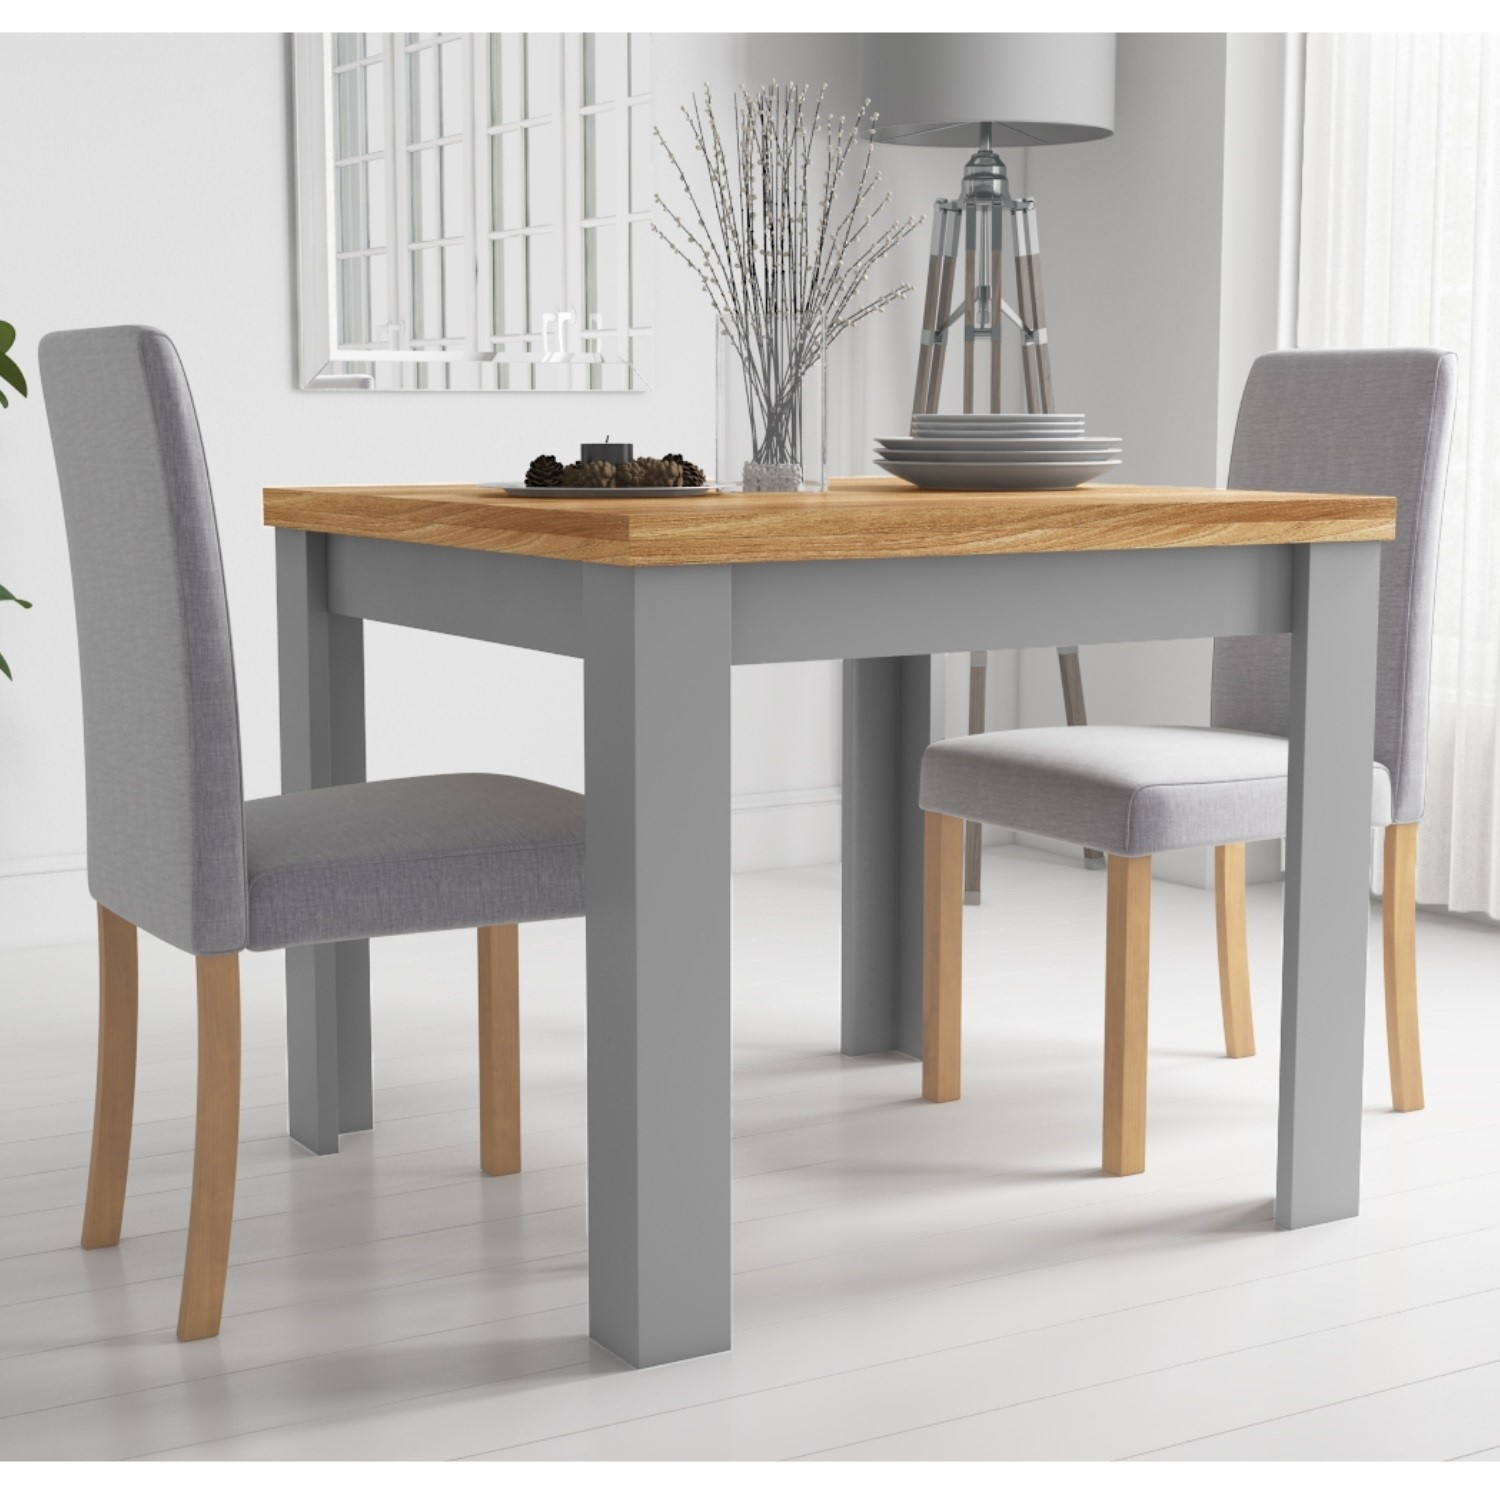 New Town Extendable Grey Natural Dining Set With 2 Chairs In Grey Fabric Furniture123